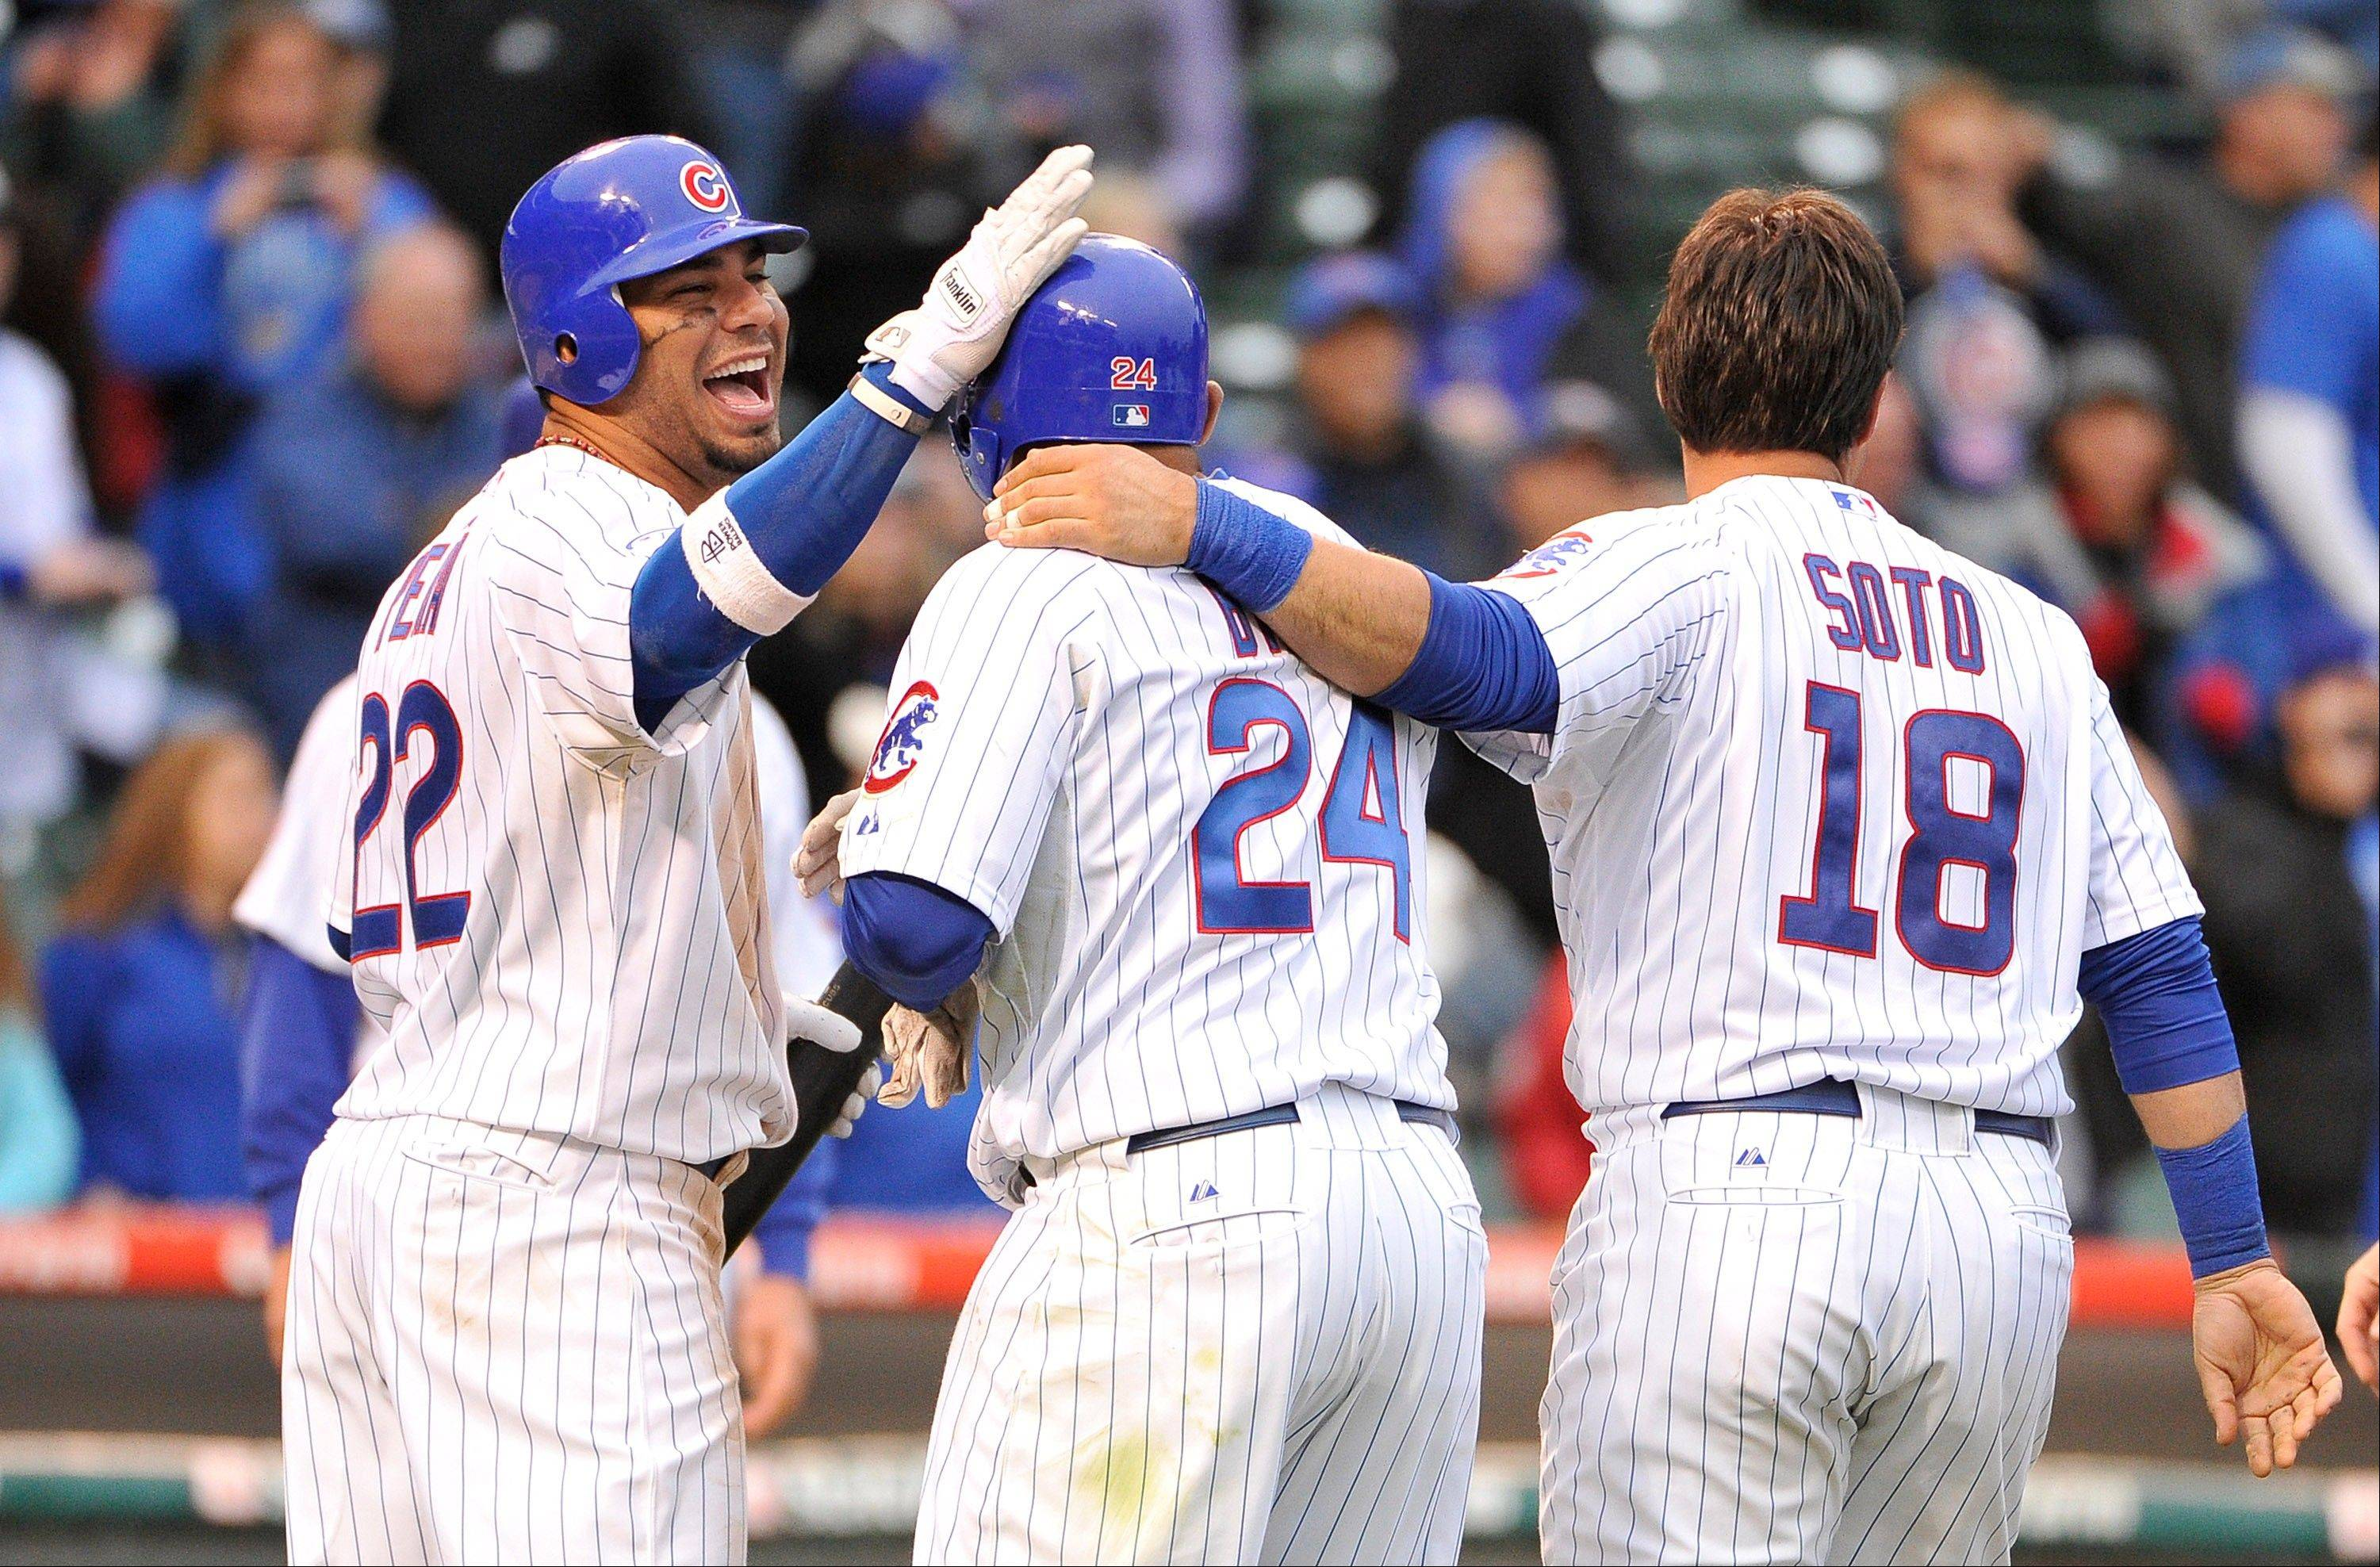 The Cubs' Carlos Pena, left, and Geovany Soto congratulate Marlon Byrd after Byrd hit a game-winning RBI-single that scored Starlin Castro for a 4-3 victory in the 12th inning Friday against the Astros at Wrigley Field.